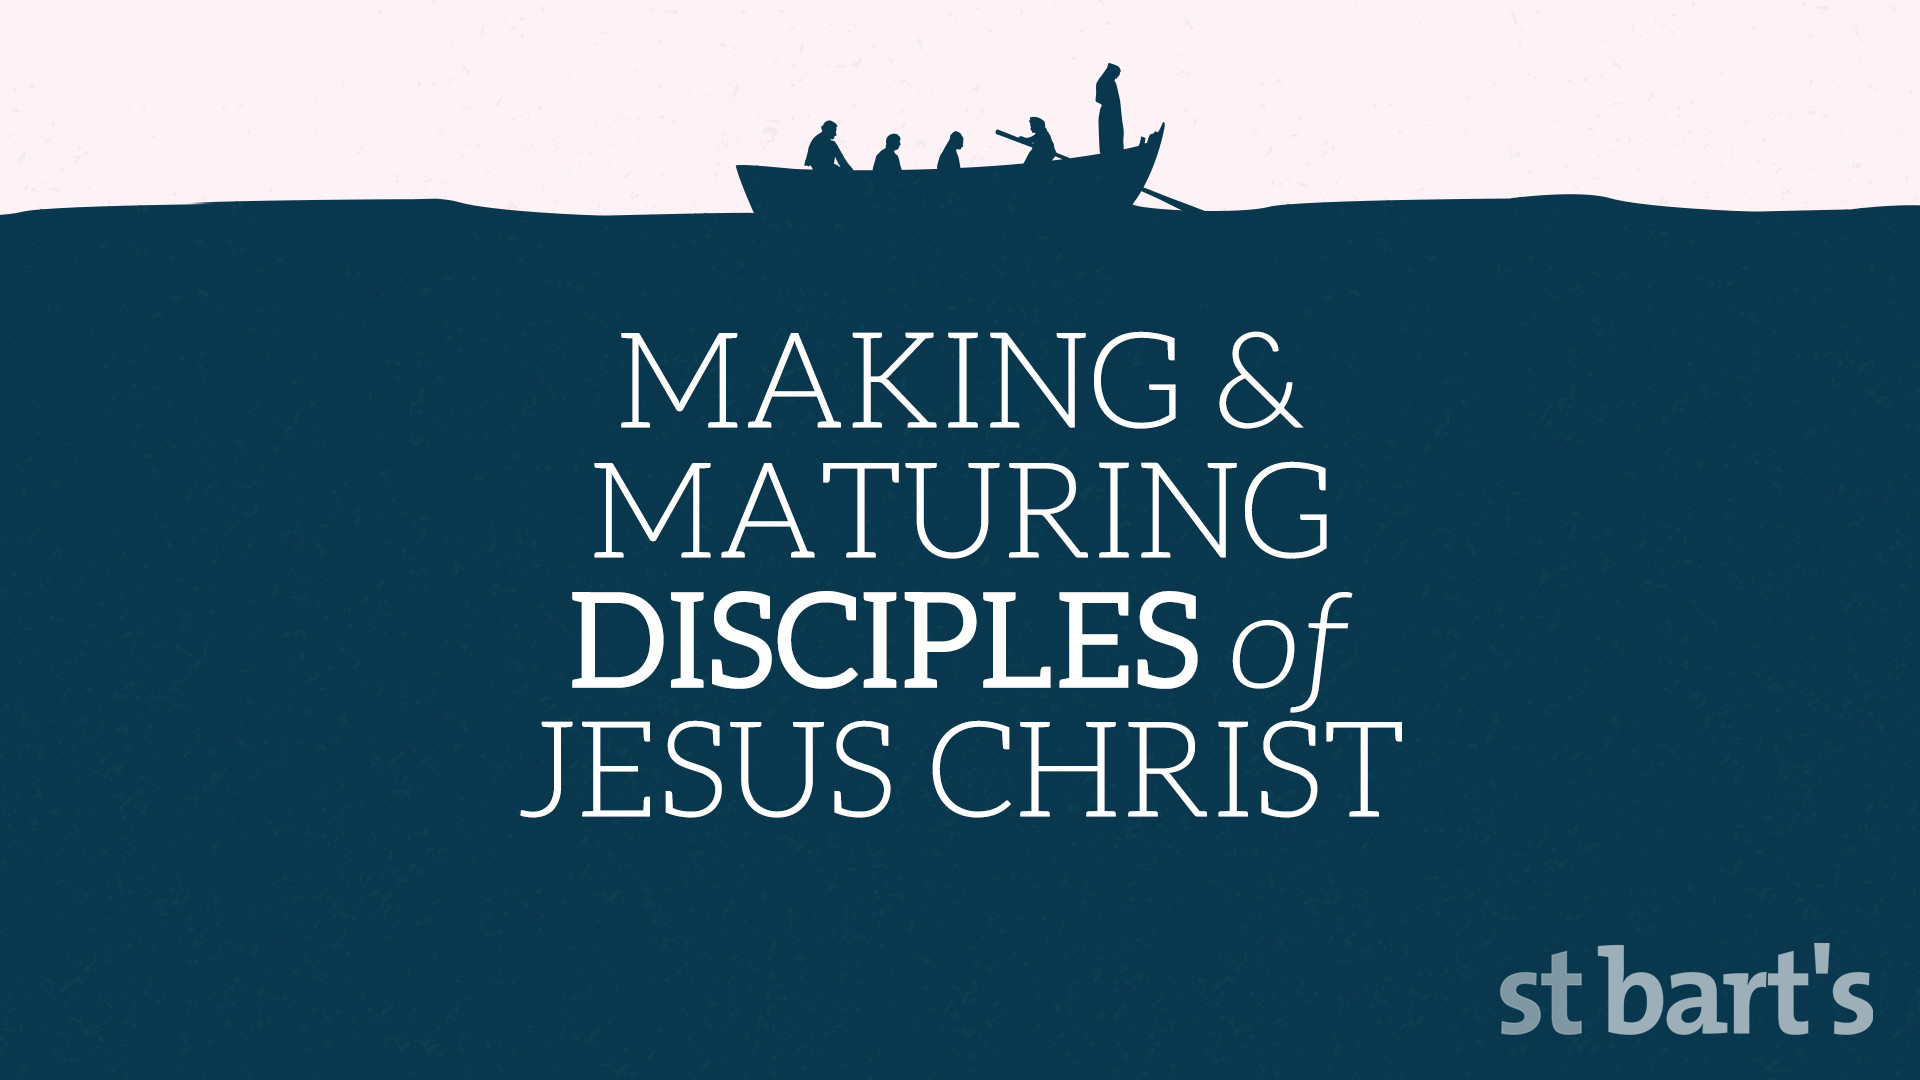 Making and Maturing Disciples